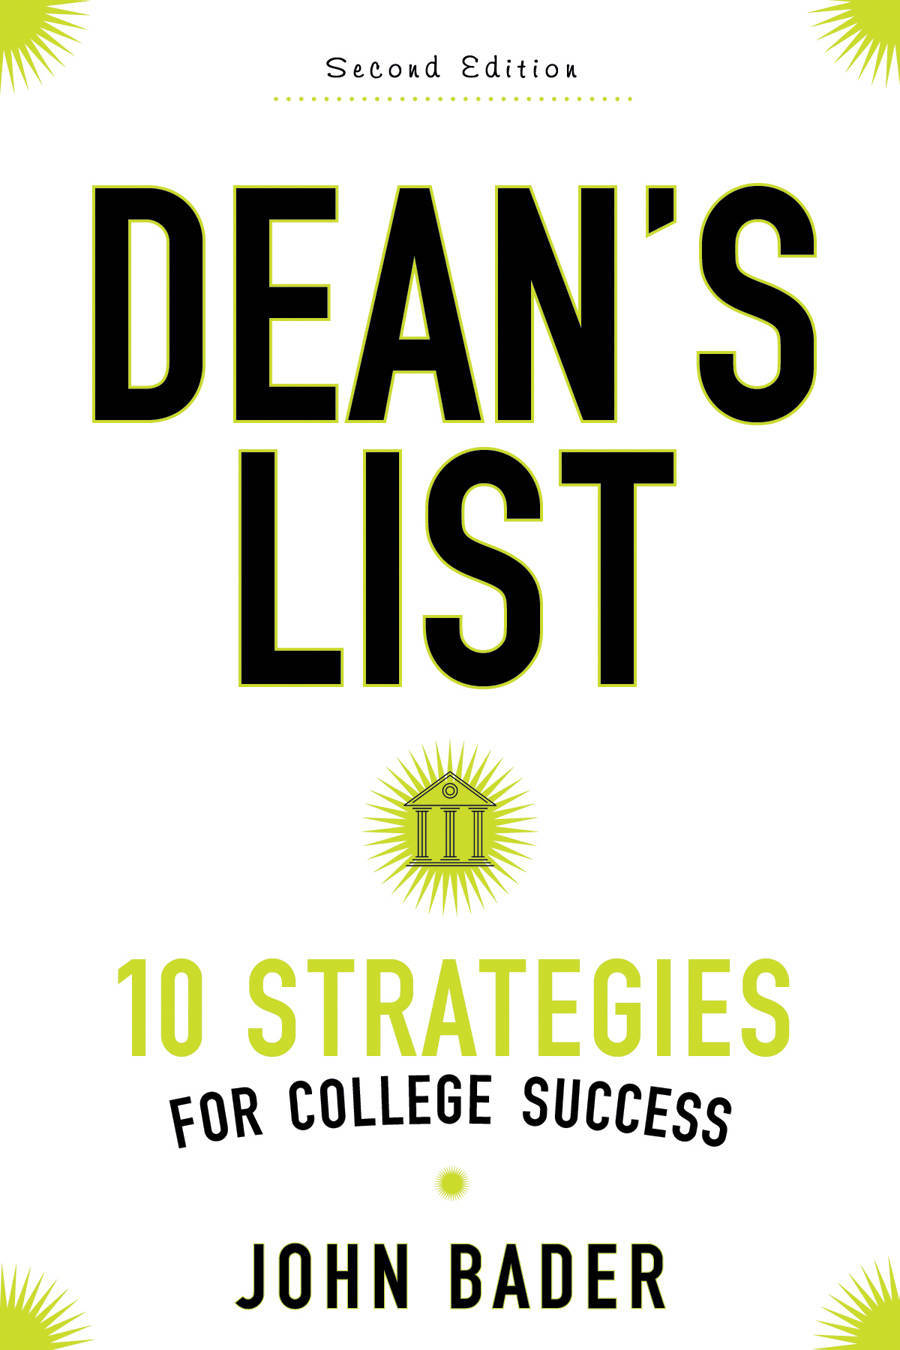 46f9a1fed22a2d808017_Deans_List_cover.jpg